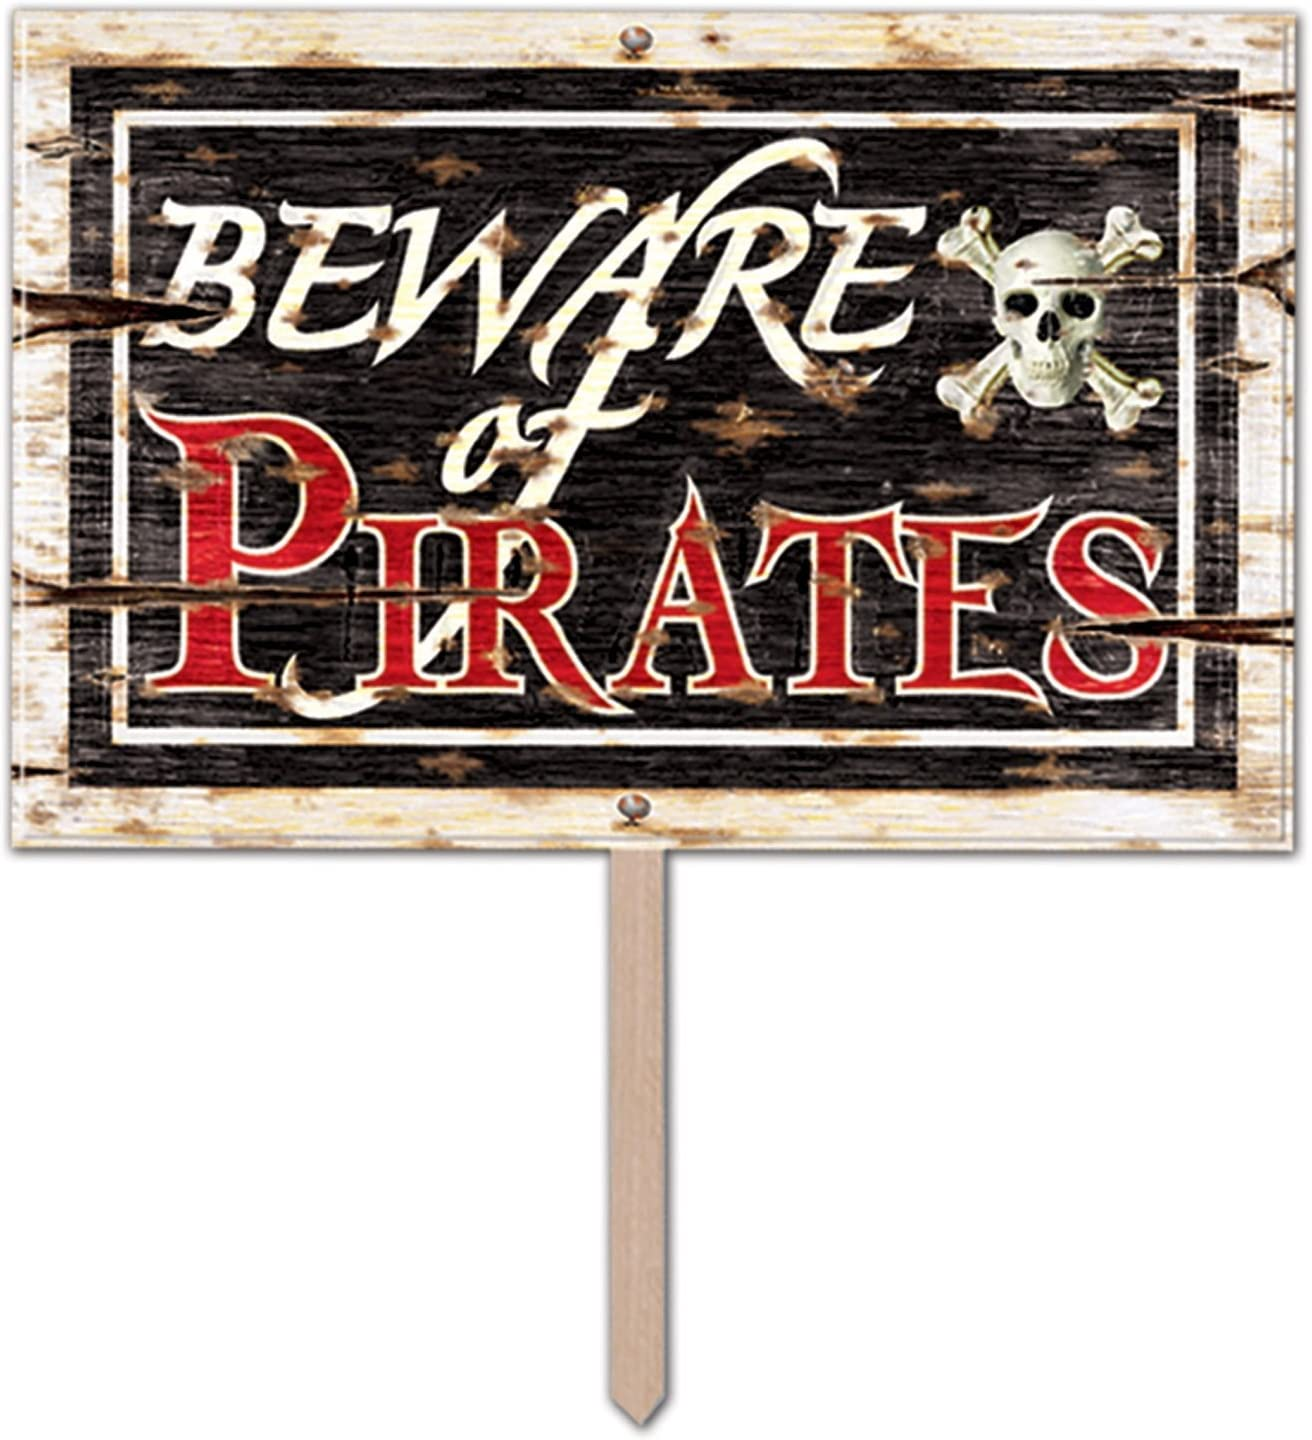 Amazon Com Beware Of Pirates 3 D Art Form Yard Sign Kitchen Dining